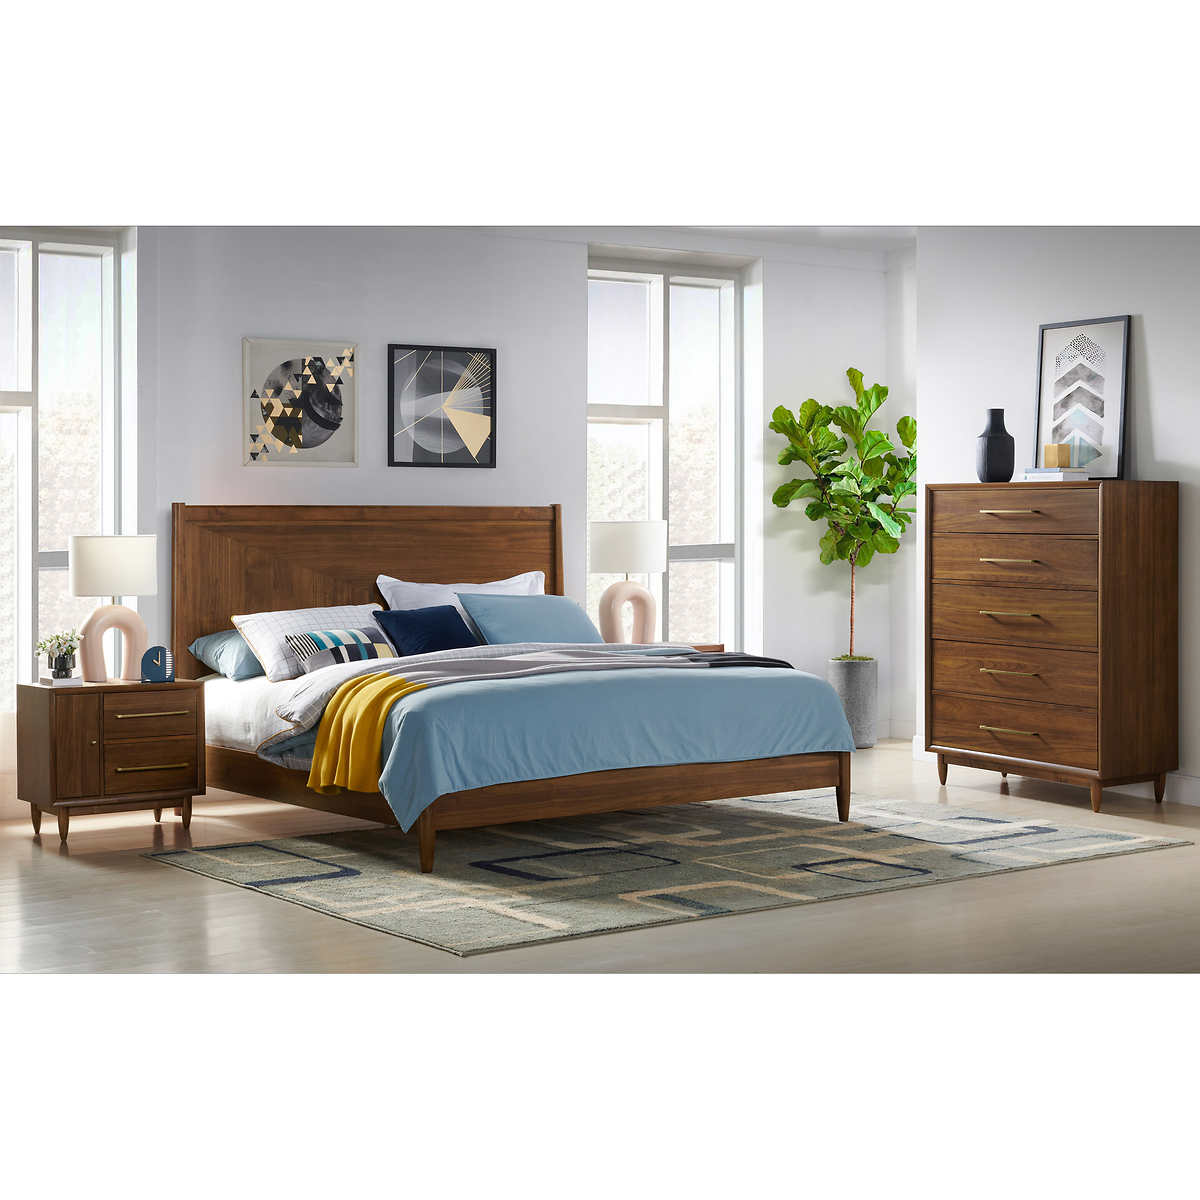 Marina Del Rey 9-piece Mid-Century Modern Queen Bedroom Set